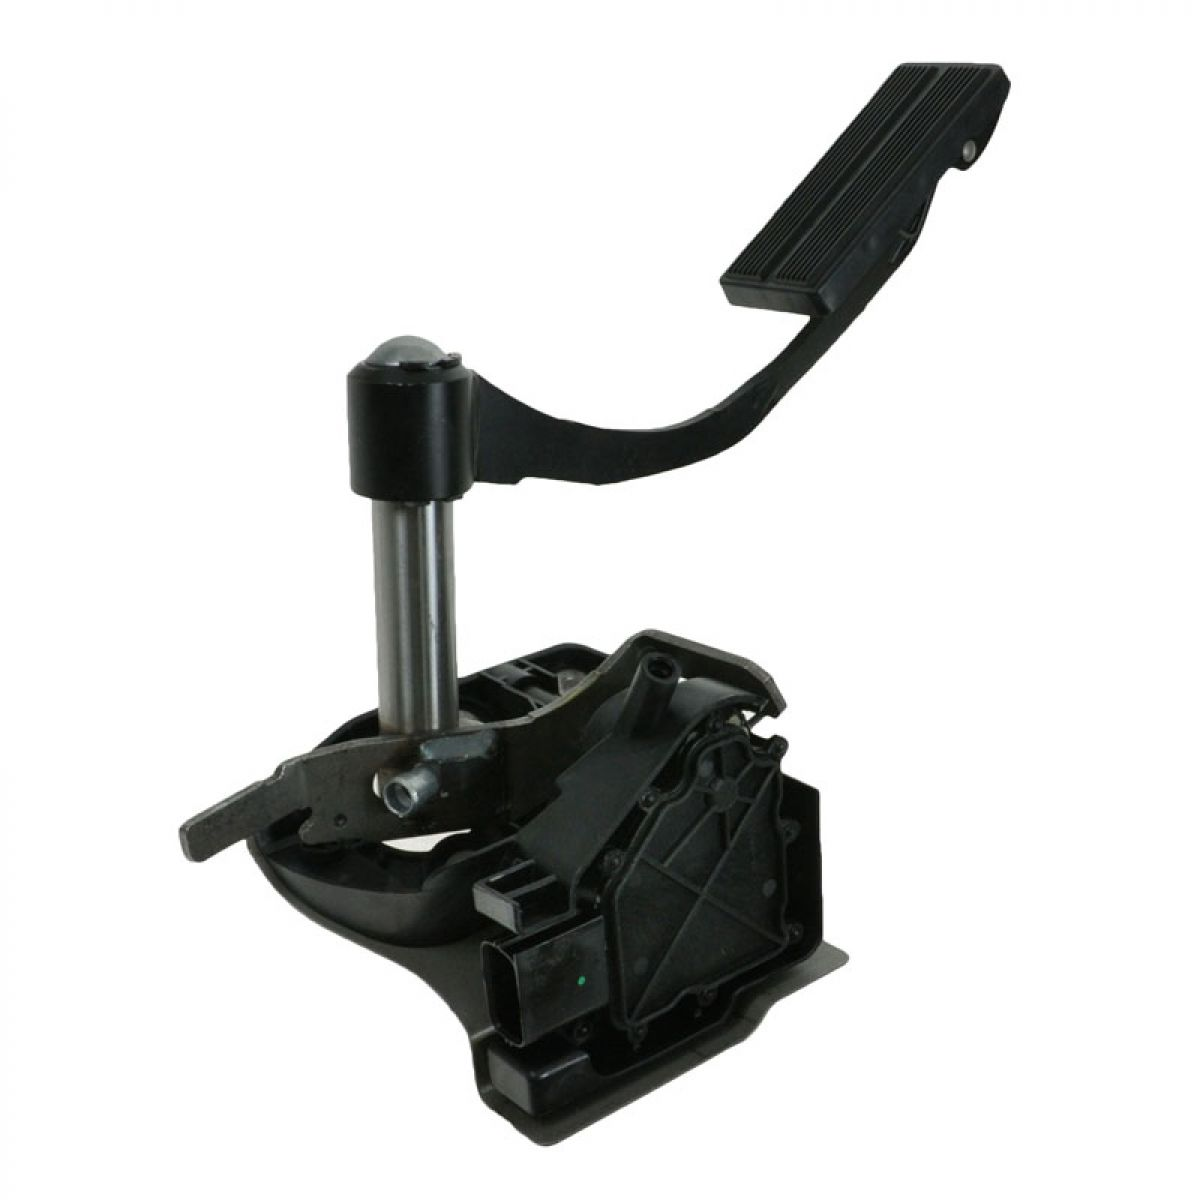 Ford Gas Pedal : Diesel adjustable accelerator gas pedal w position sensor